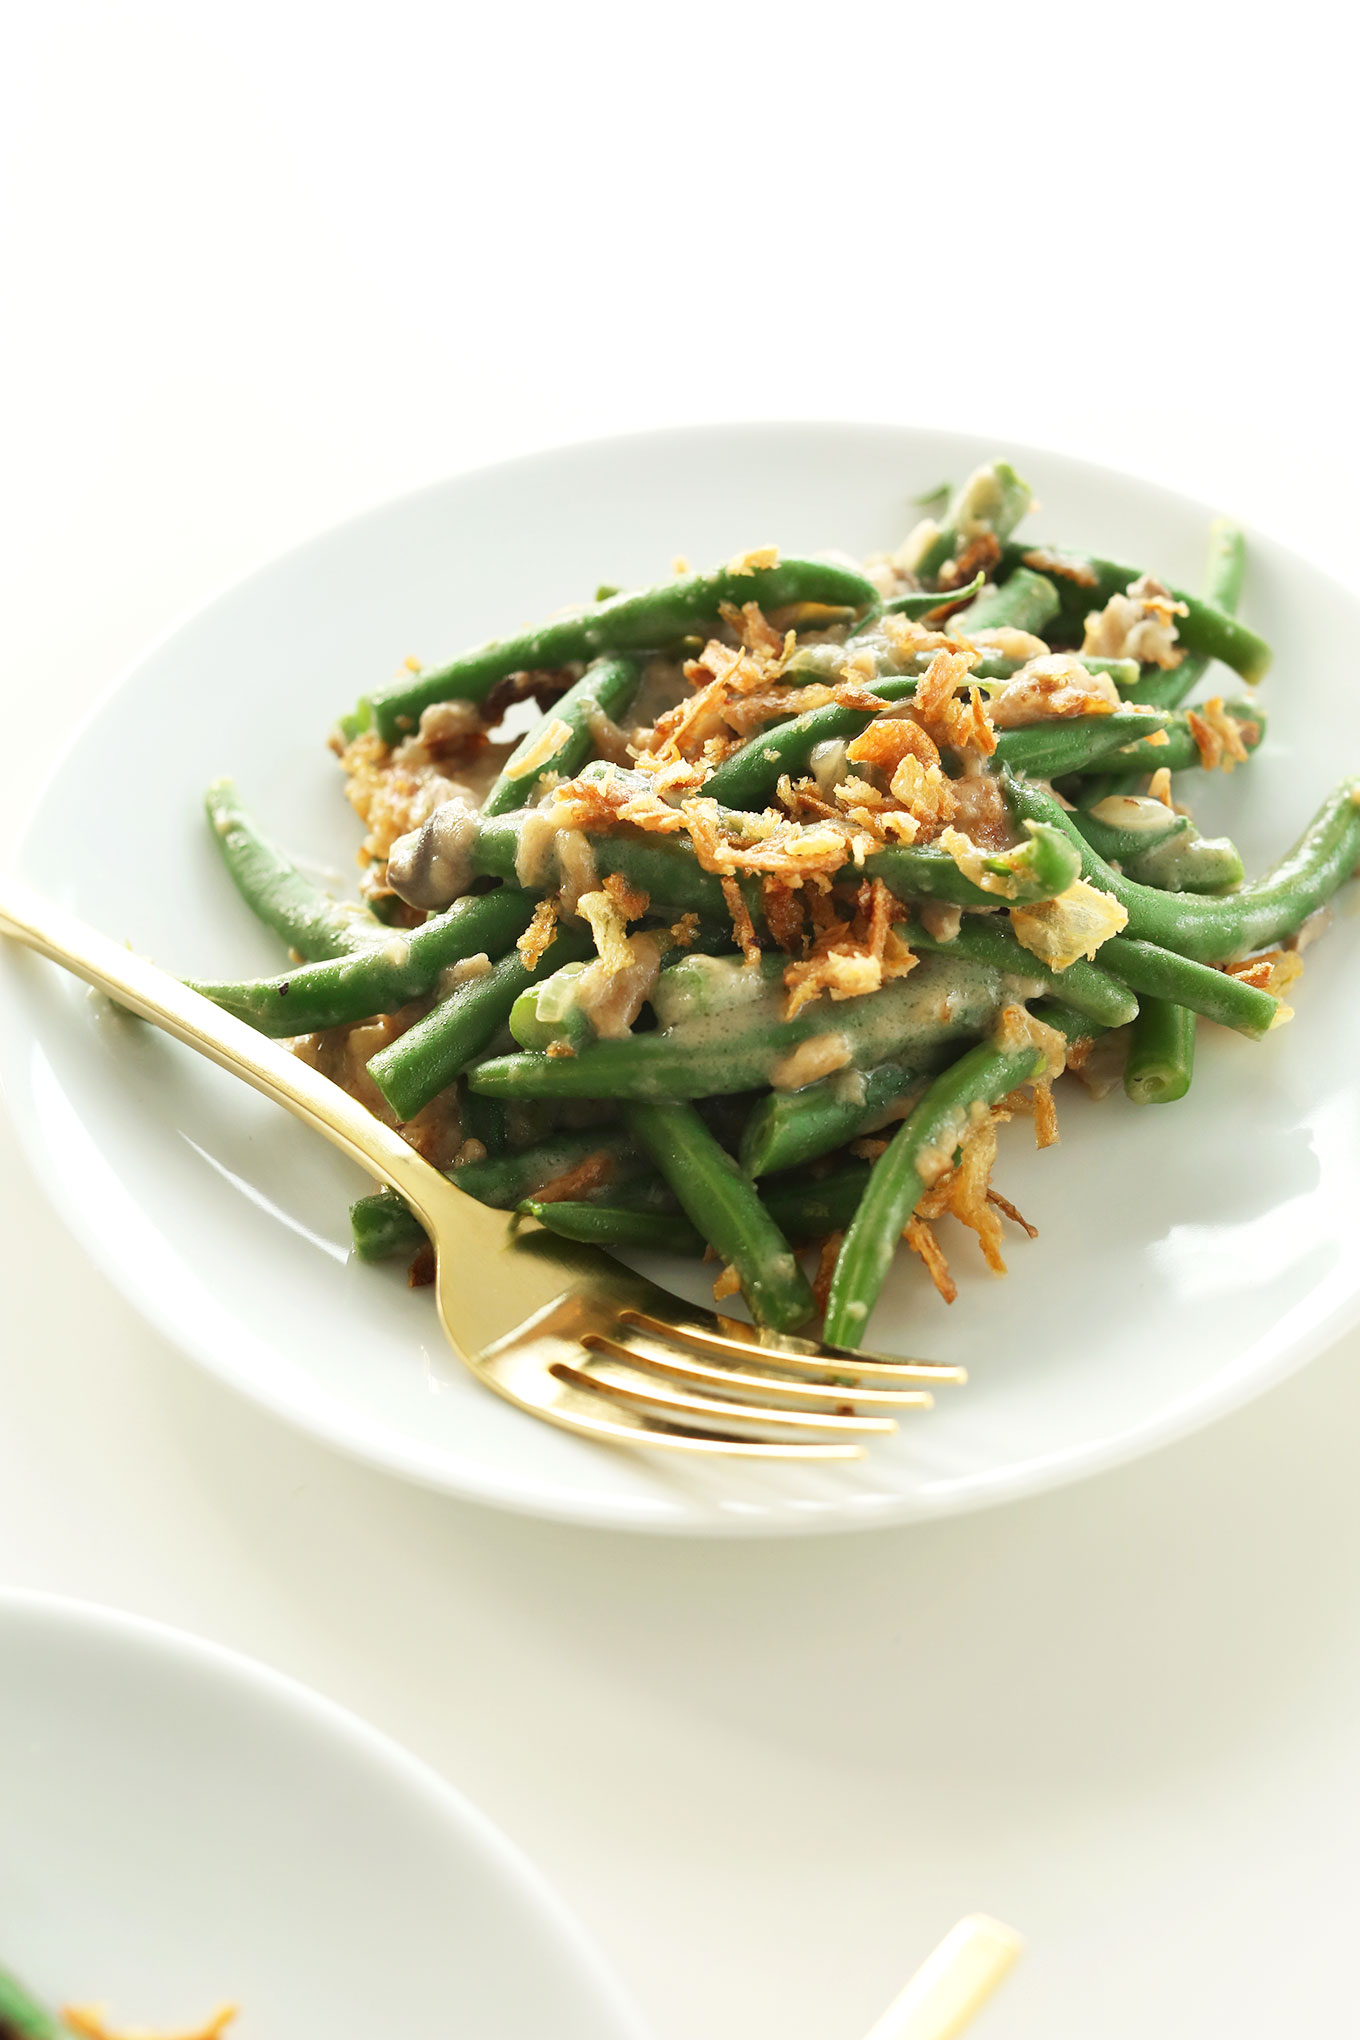 Plate of our creamy and delicious Vegan Green Bean Casserole recipe